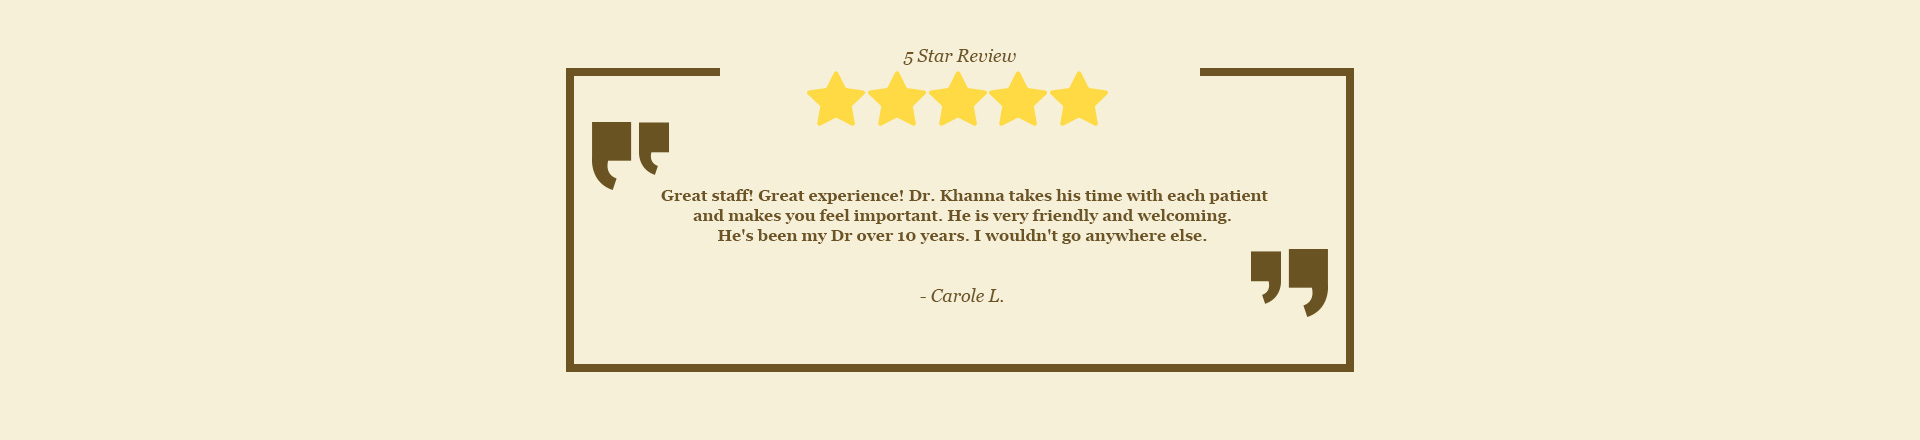 Dr. Vikram Khanna Board-Certified Dermatologist, Algonquin IL - 5 star Review